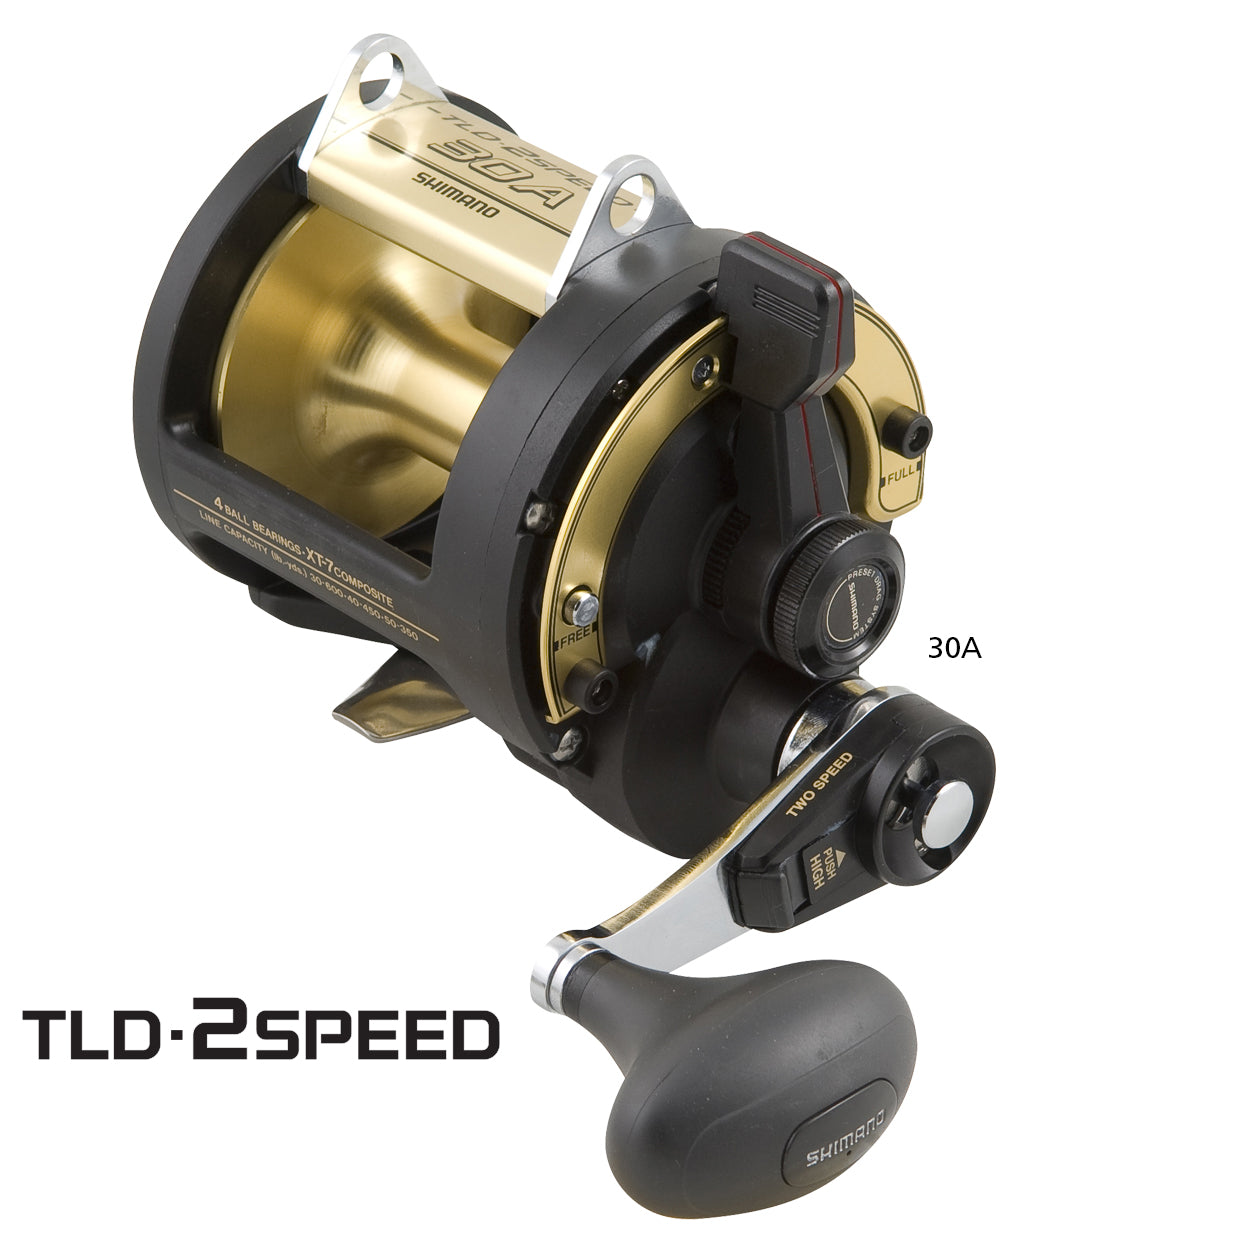 Shimano TLD 2 Speed Game Reel